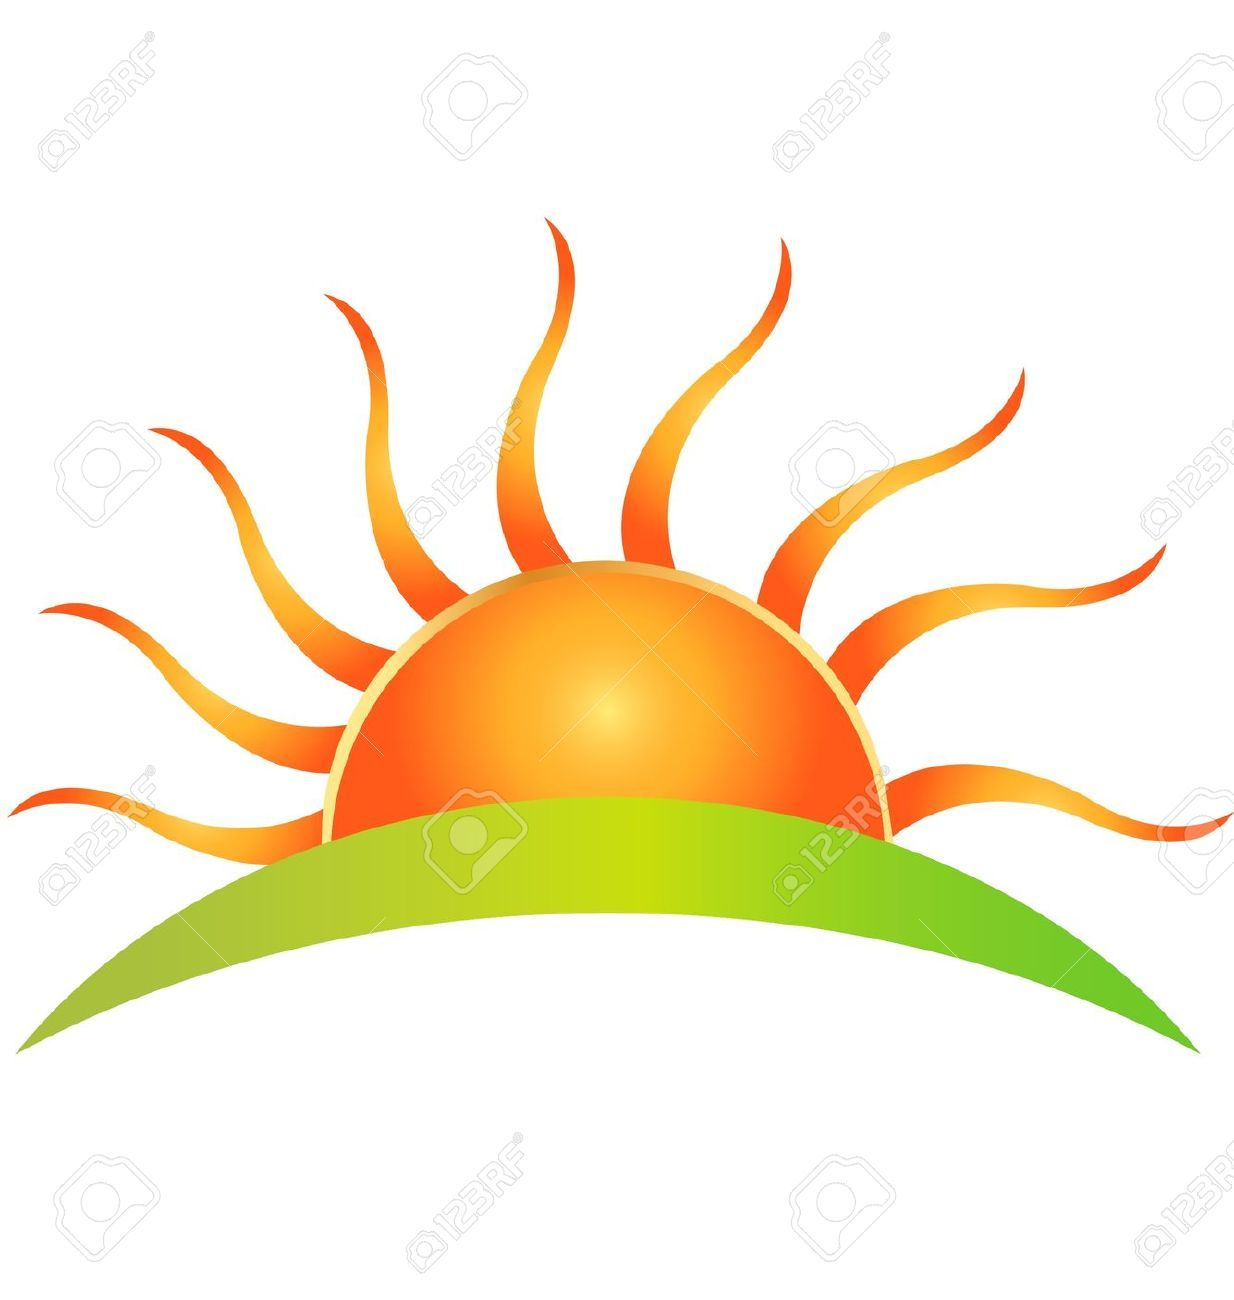 image result for sun logo solfoods pinterest logos and searching rh pinterest com Sunlight Drawing Sunlight Photography